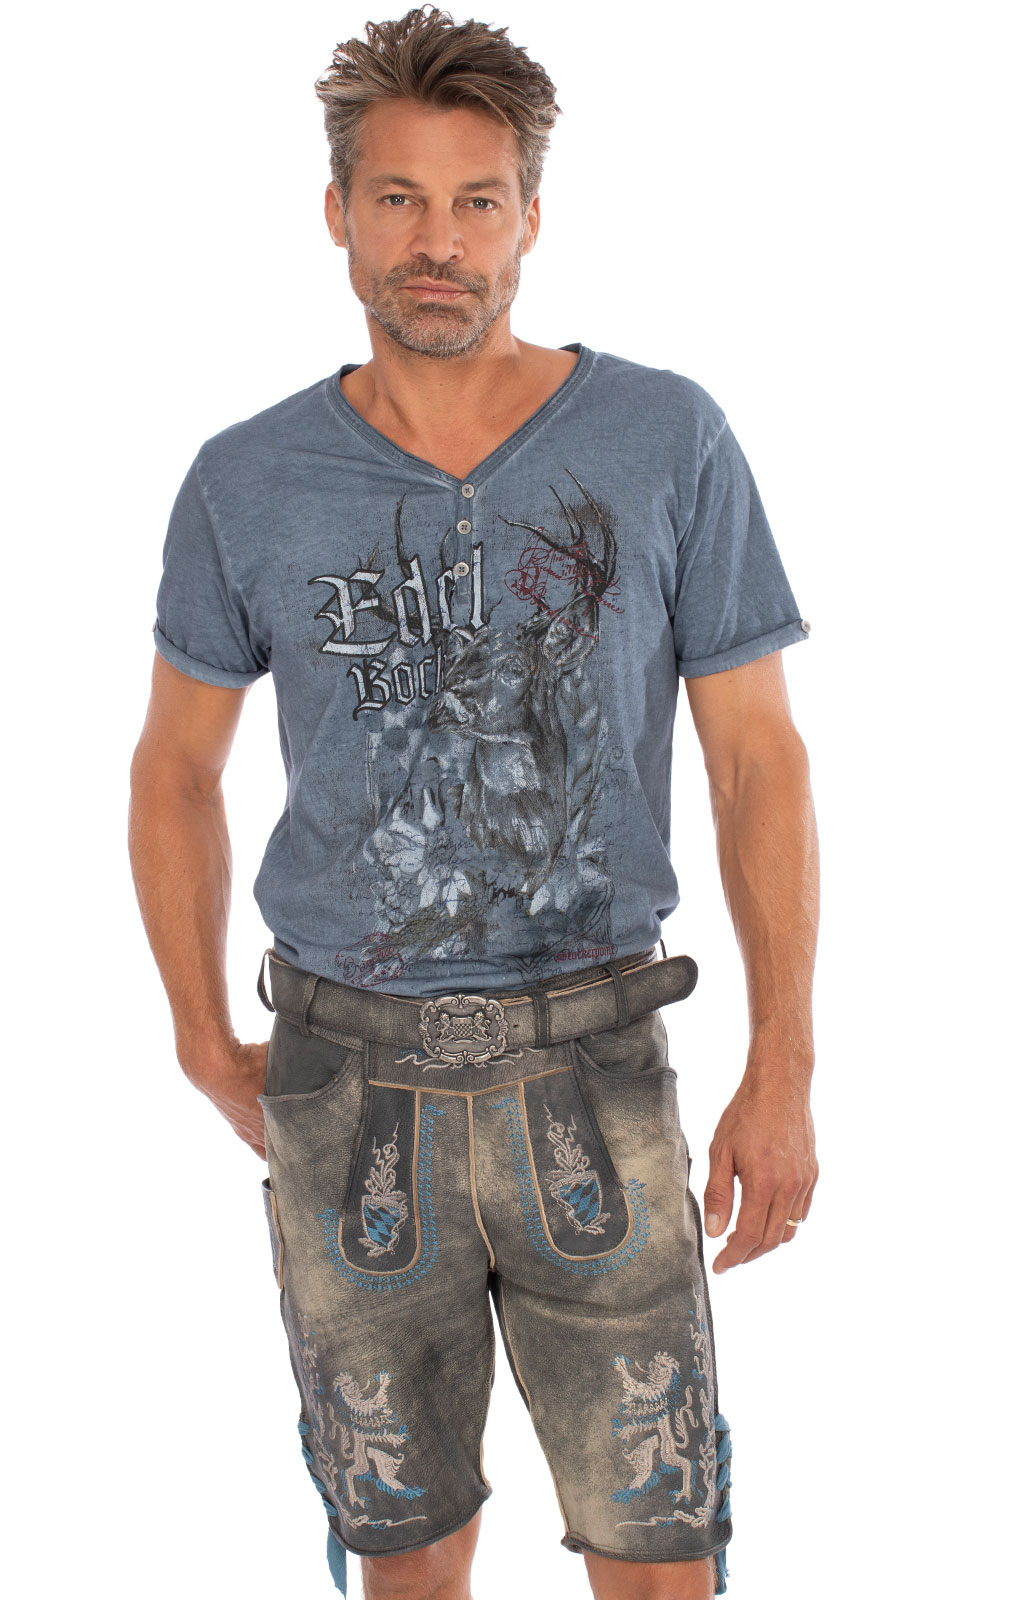 Traditional Leather Trousers with Belt BAYERNBUA Gray Antique